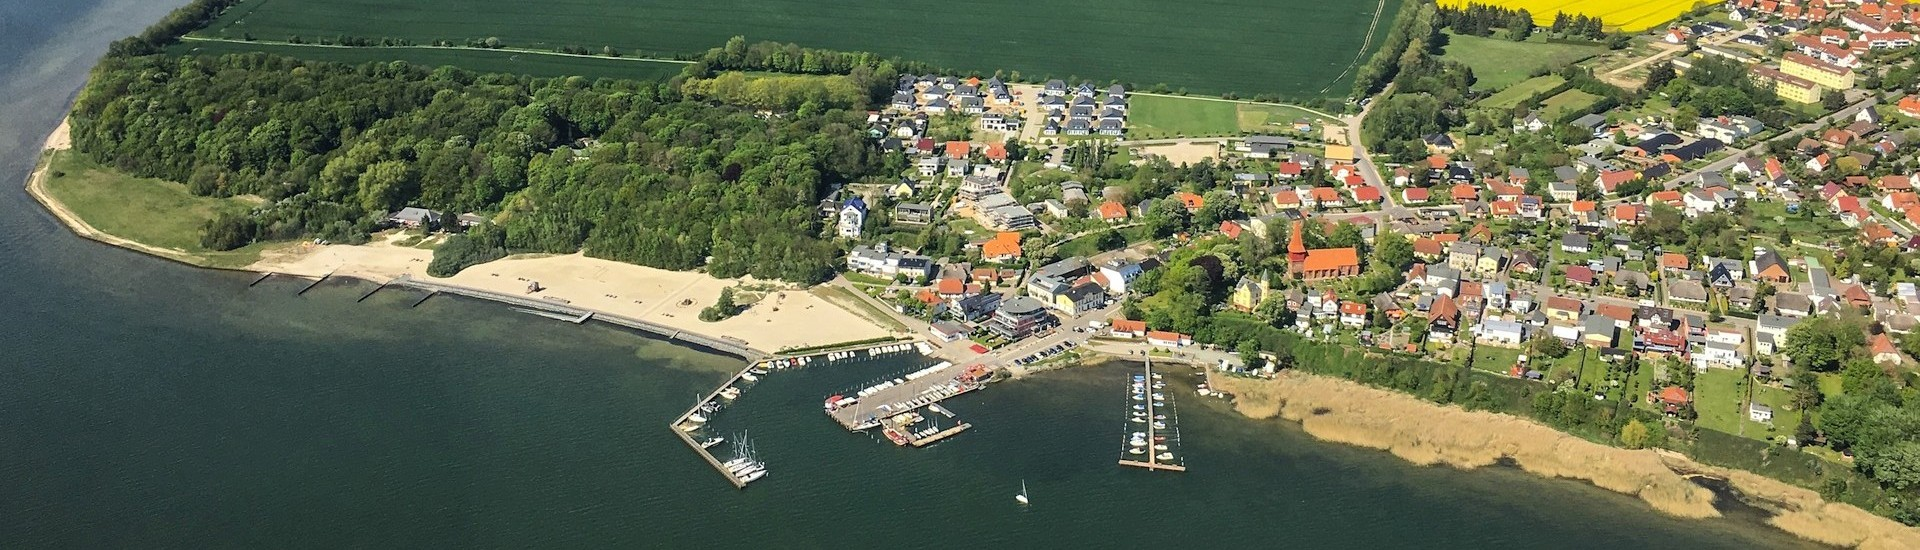 Altefaehr from the air with a view on the holiday home park 'Sonnengarten - Sunny Garden'.